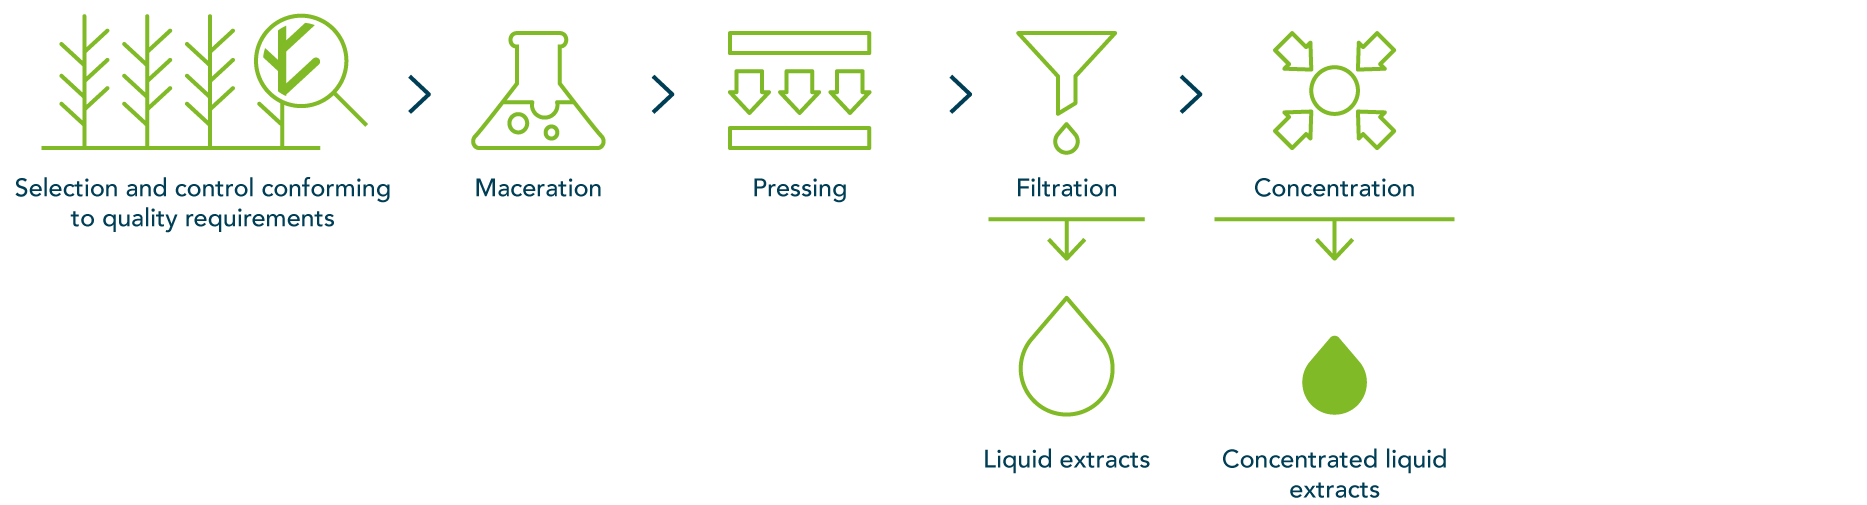 Our extraction processes